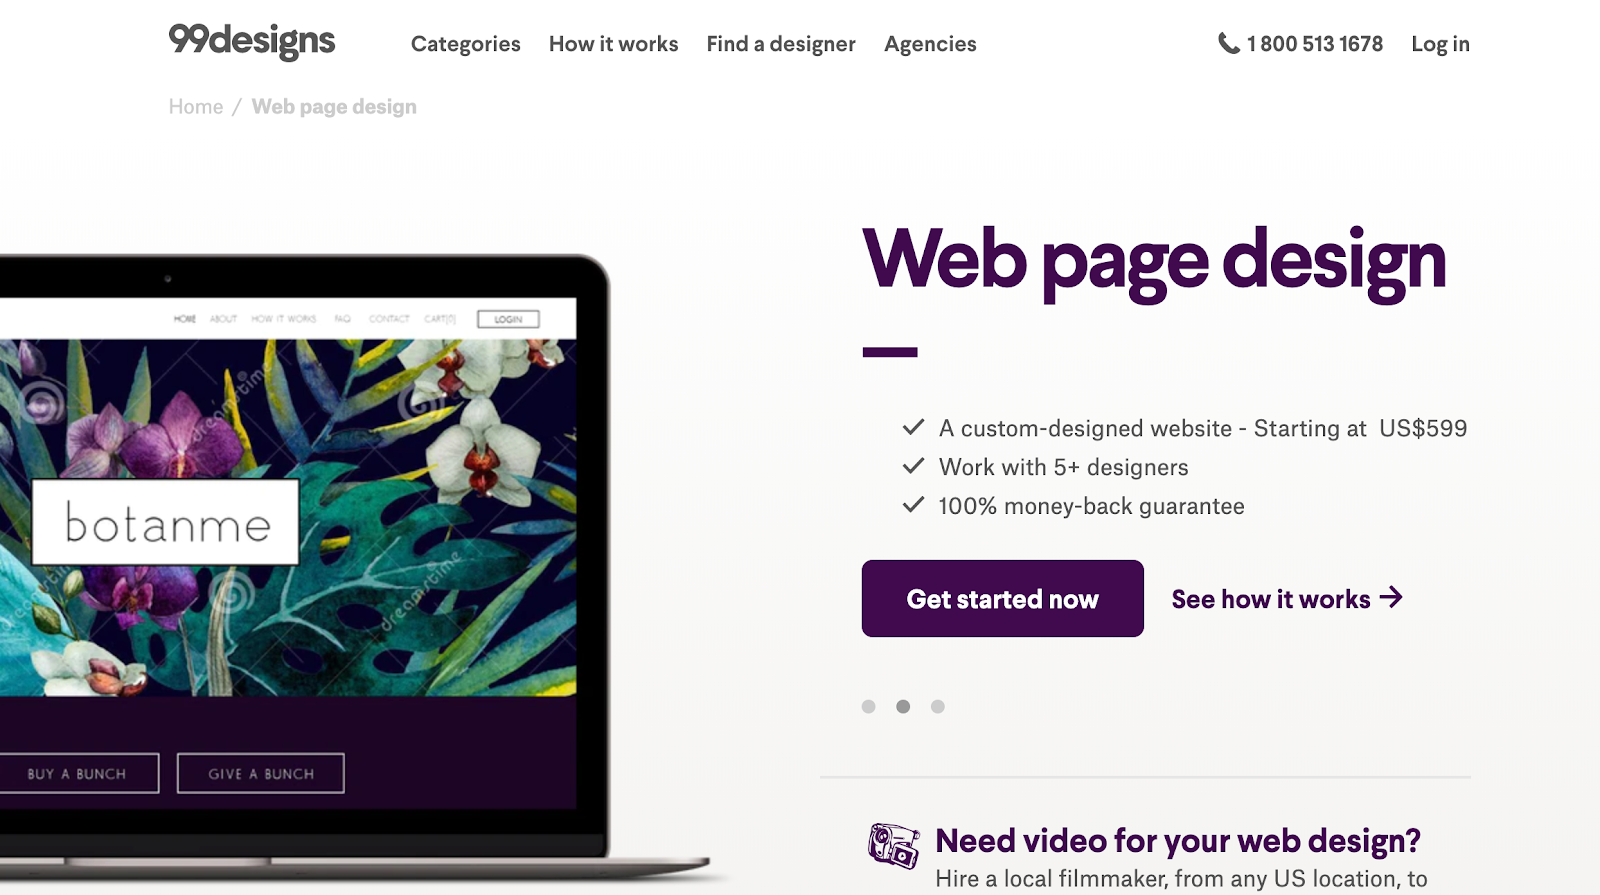 99designs offers affordable web design services